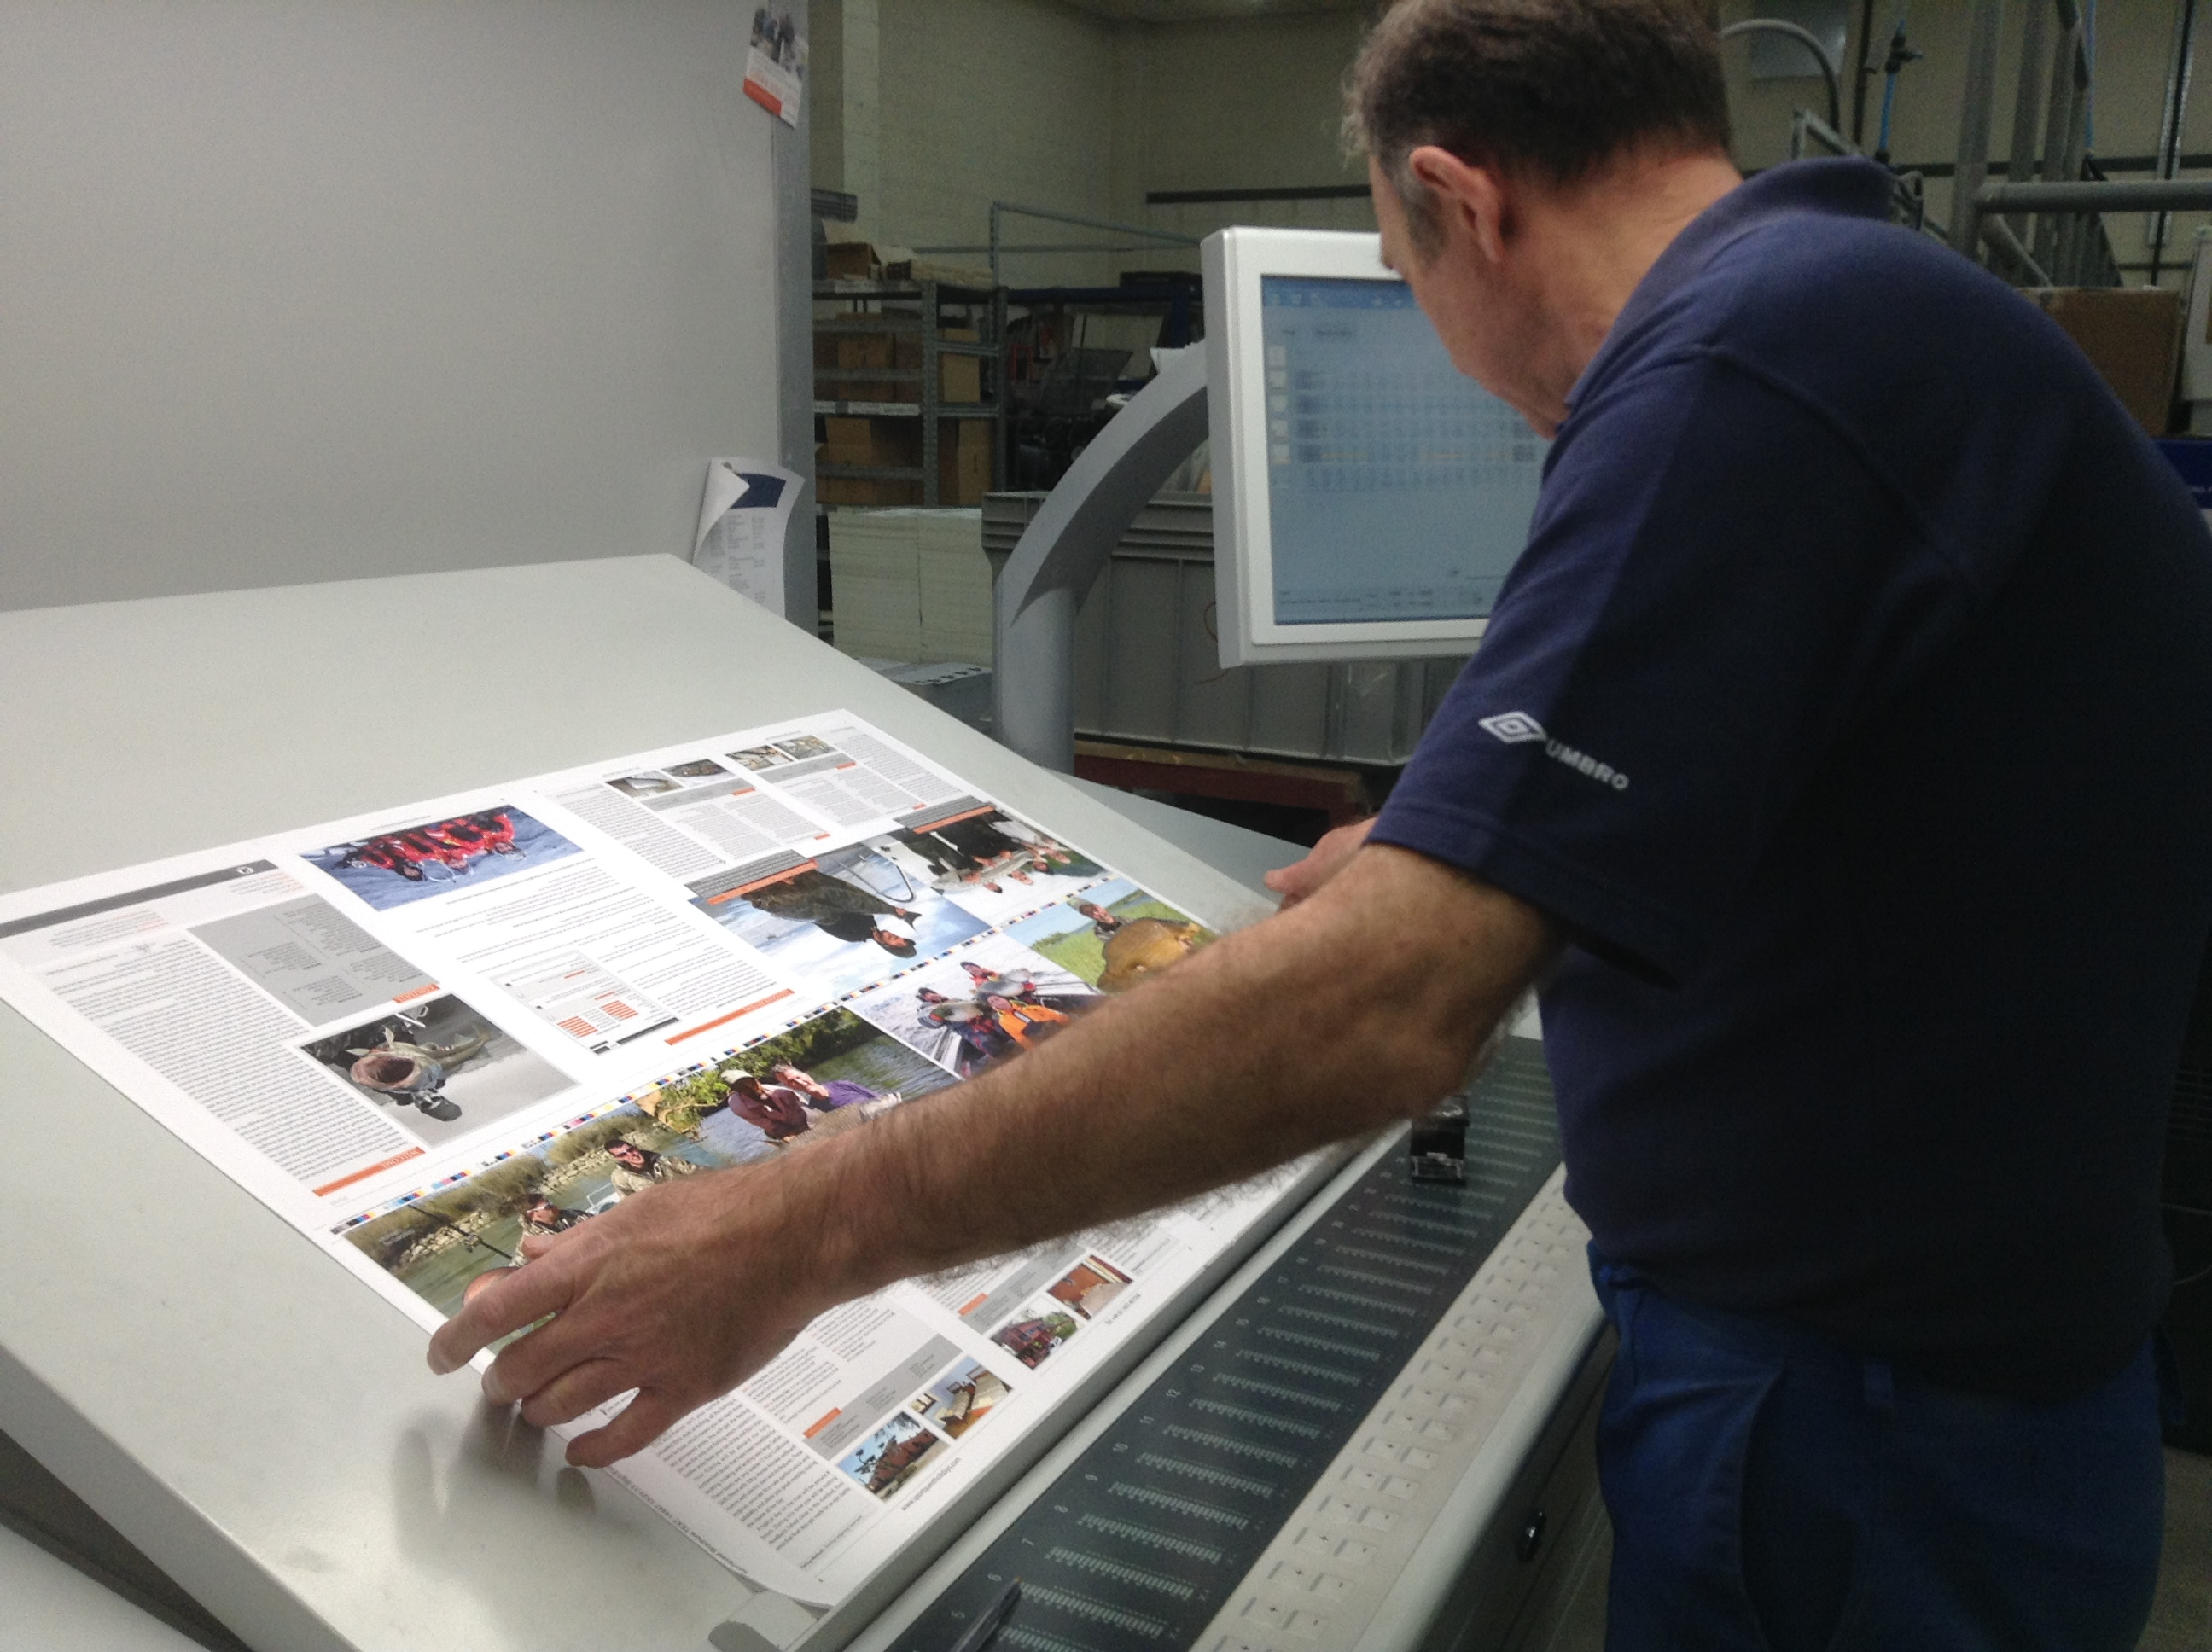 Our Sportquest Brochure being printed